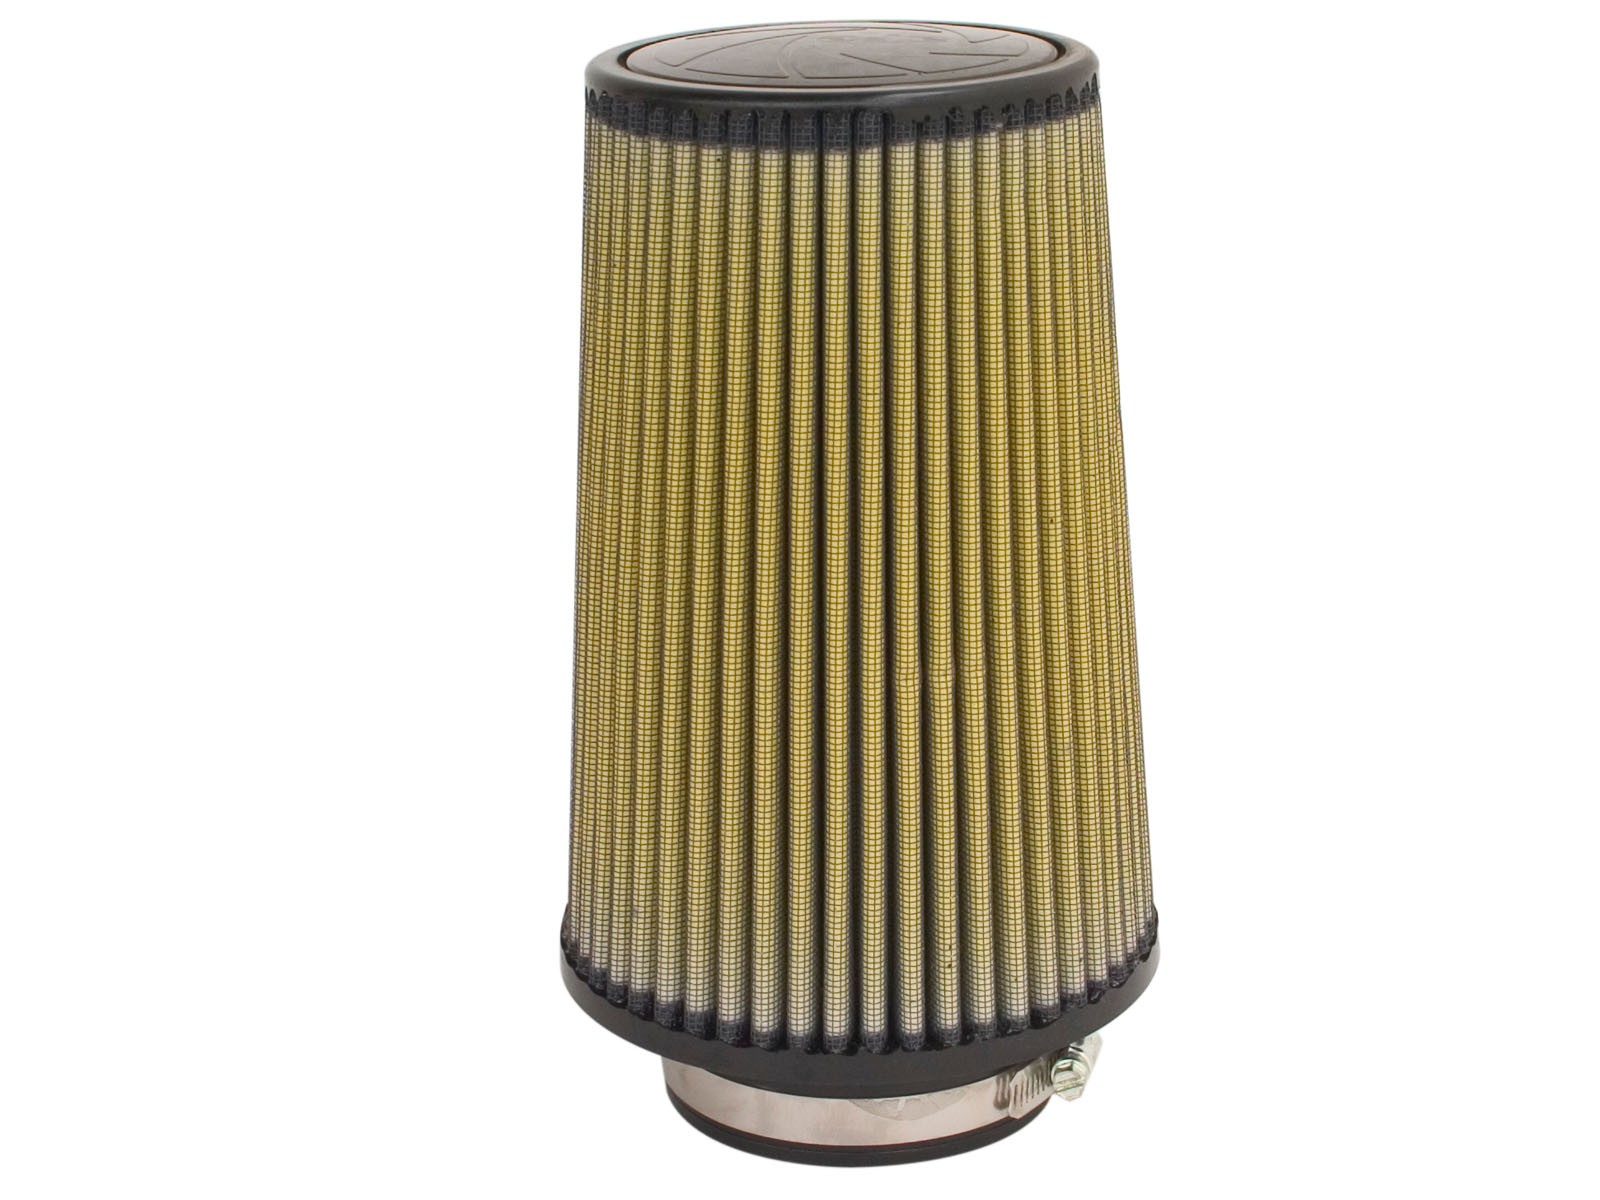 aFe POWER 72-35035 Magnum FLOW Pro GUARD7 Air Filter